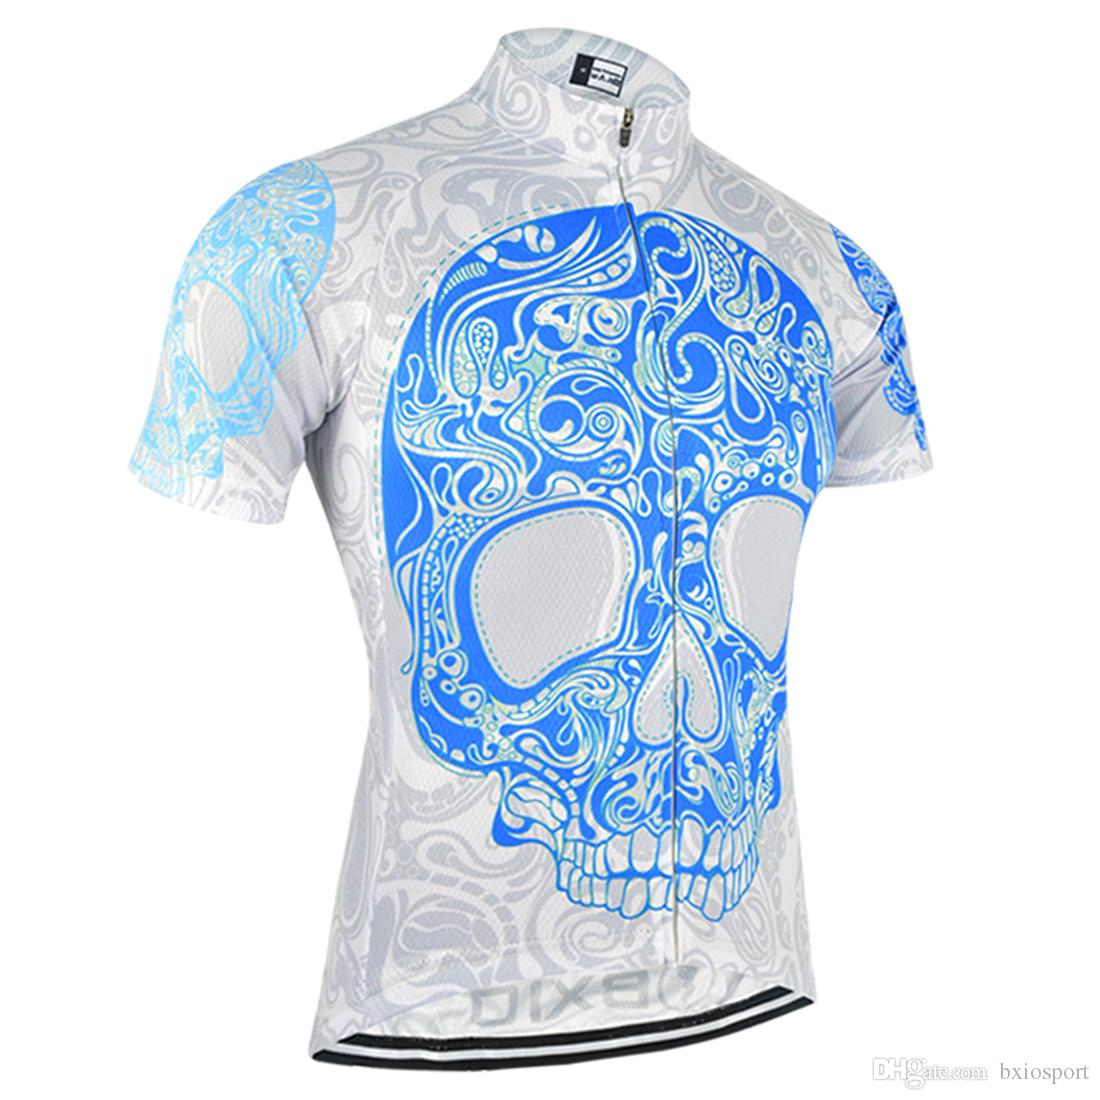 Bxio Brand Skeleton Pattern Cycling Jersey Short Sleeve Bicycle Clothing 3  Rear Pockets Ropa Ciclismo Patrón De Esqueleto Verano Bx 104 Bicycle T  Shirts ... a86a72a2a